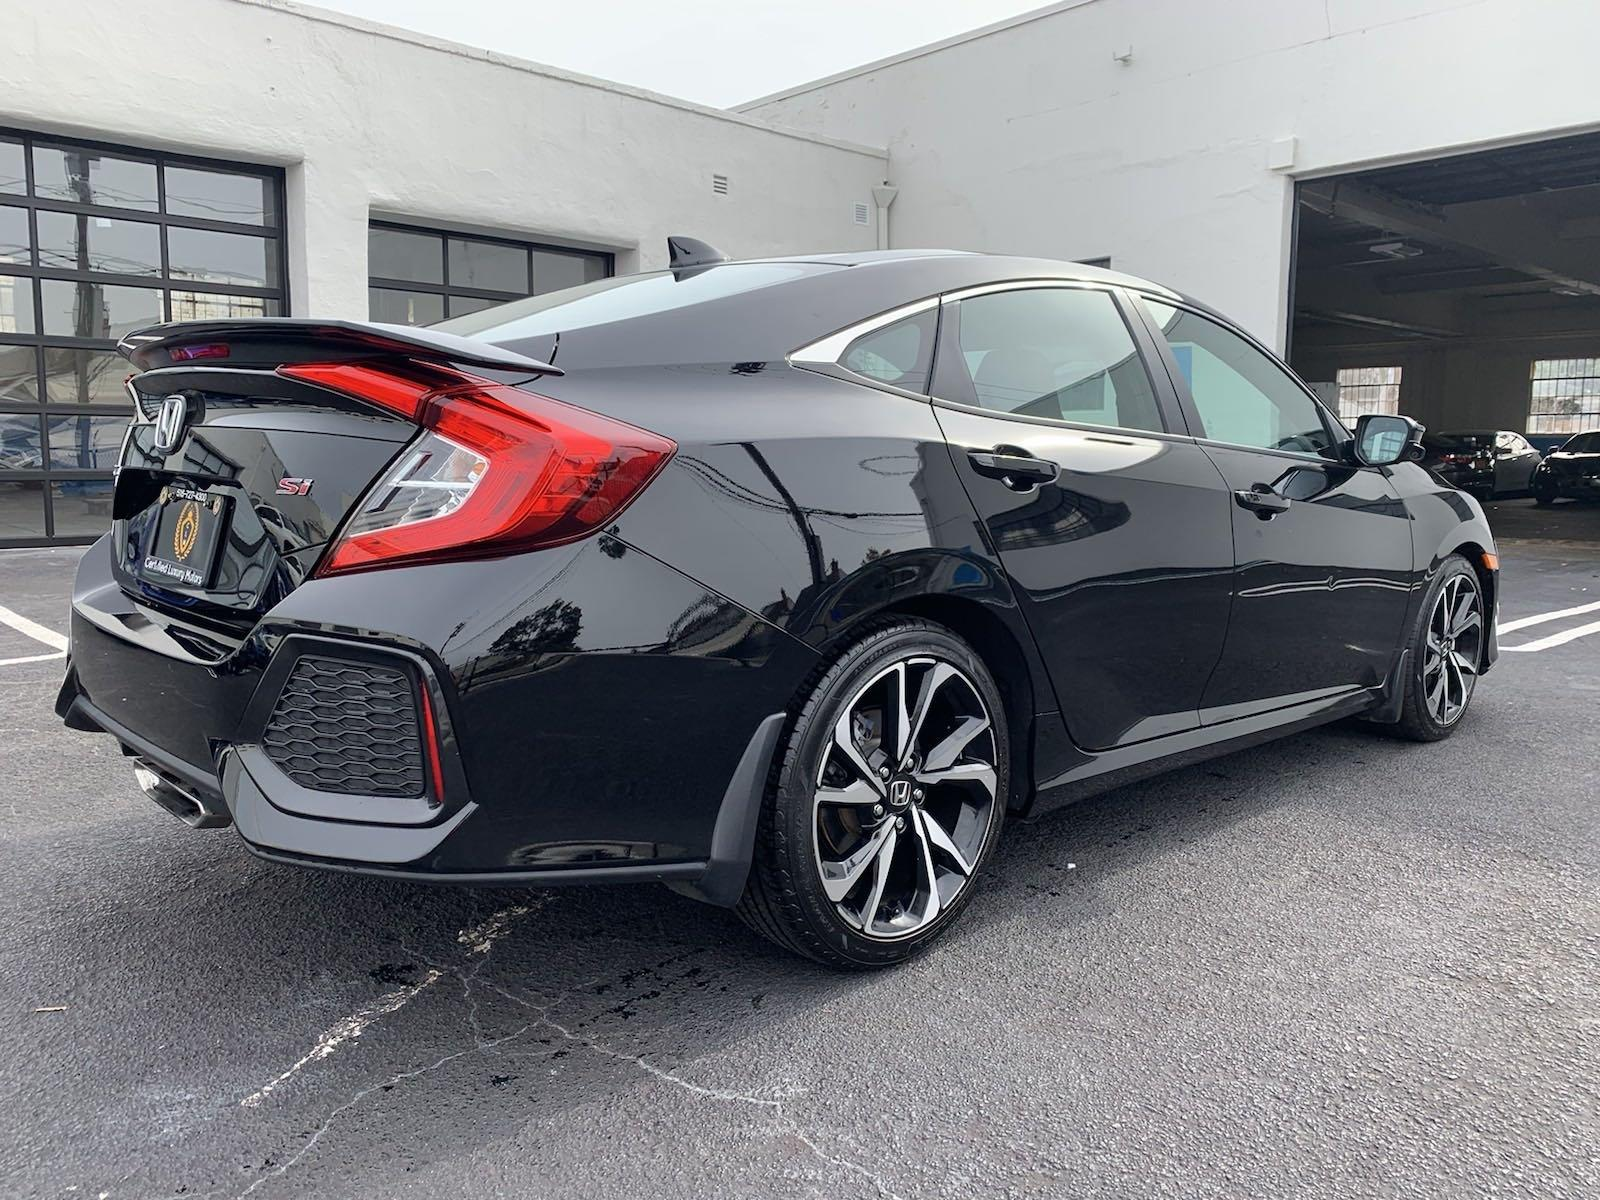 Used-2018-Honda-Civic-Si-Sedan